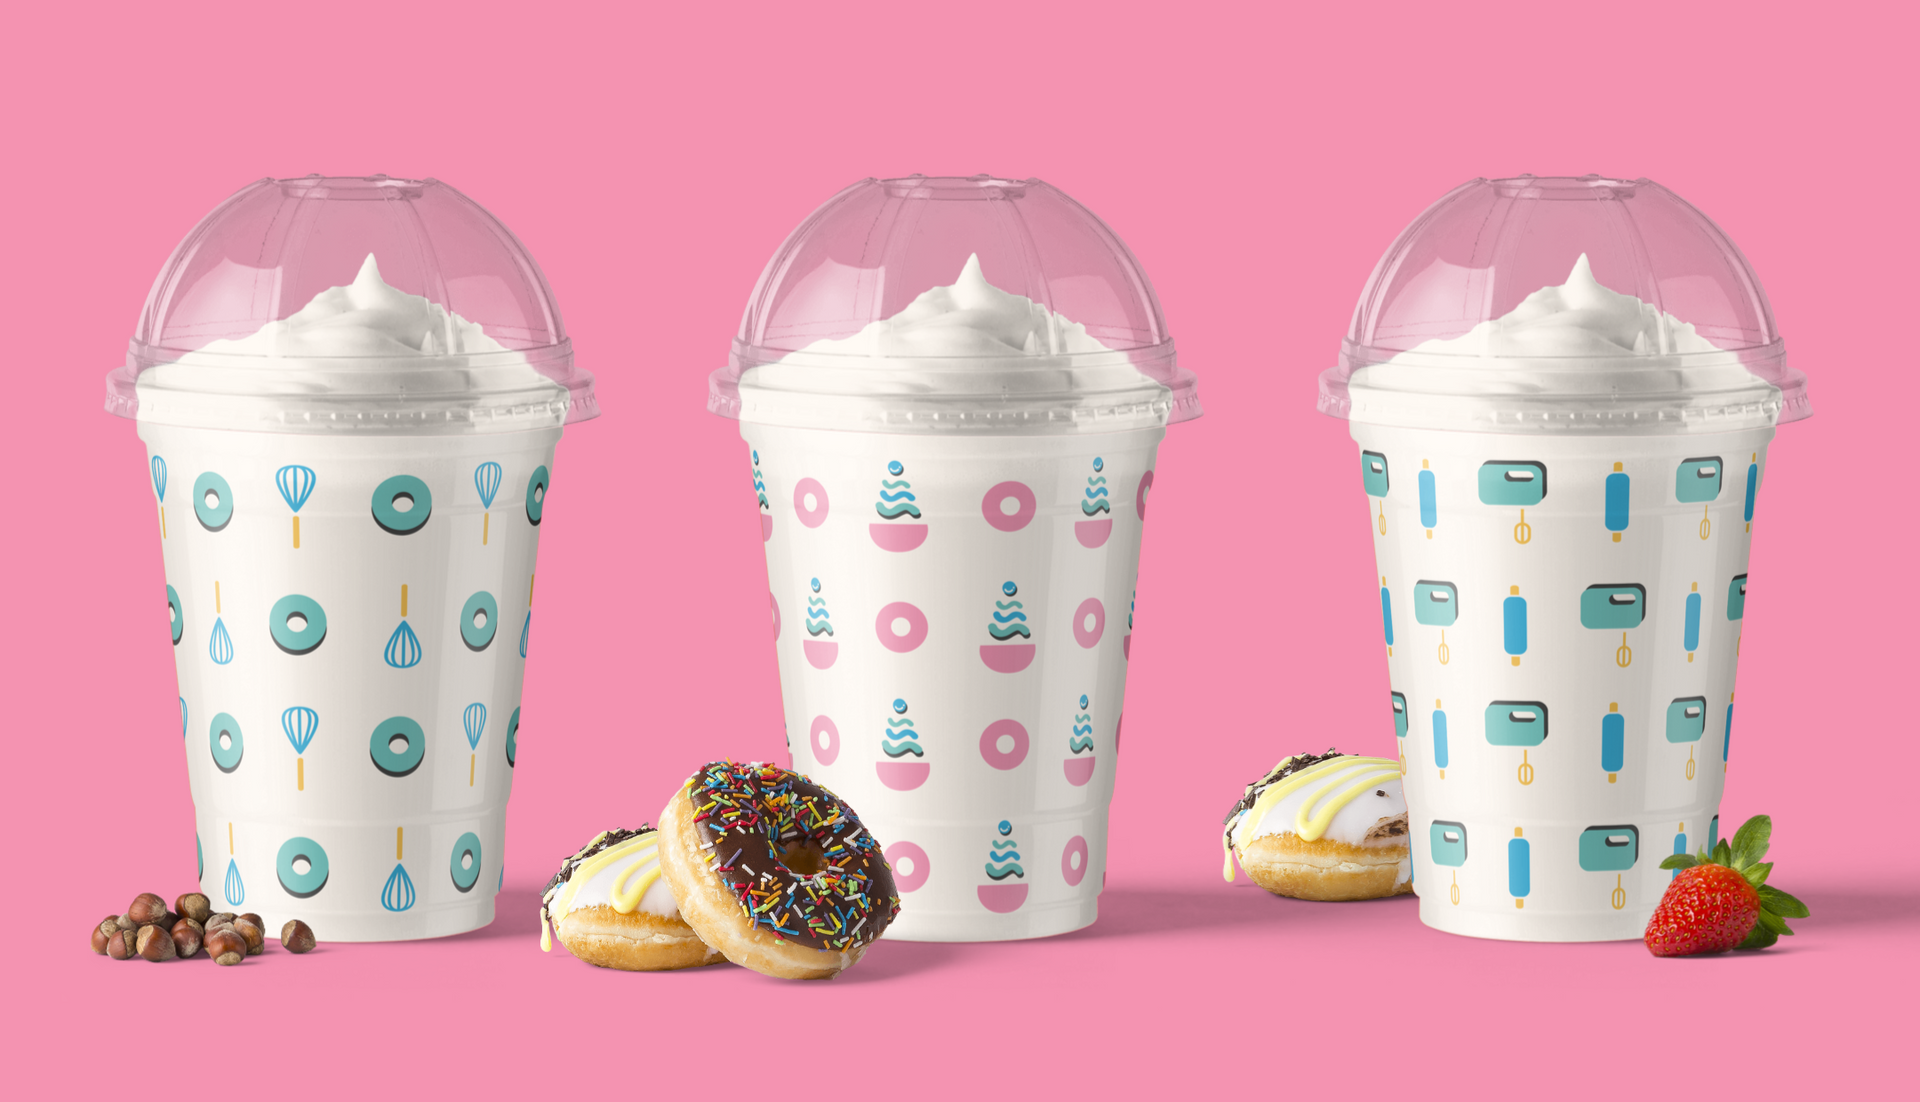 smoothie-cup-banner-design@2x-3.png